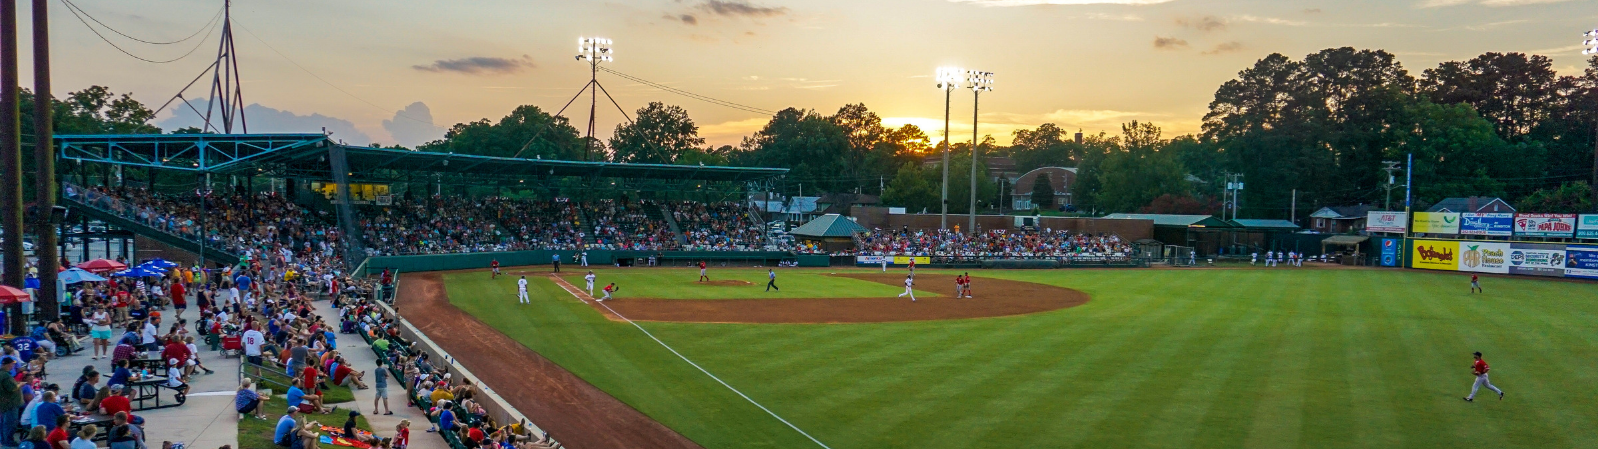 Grainer Stadium, in Kinston, NC